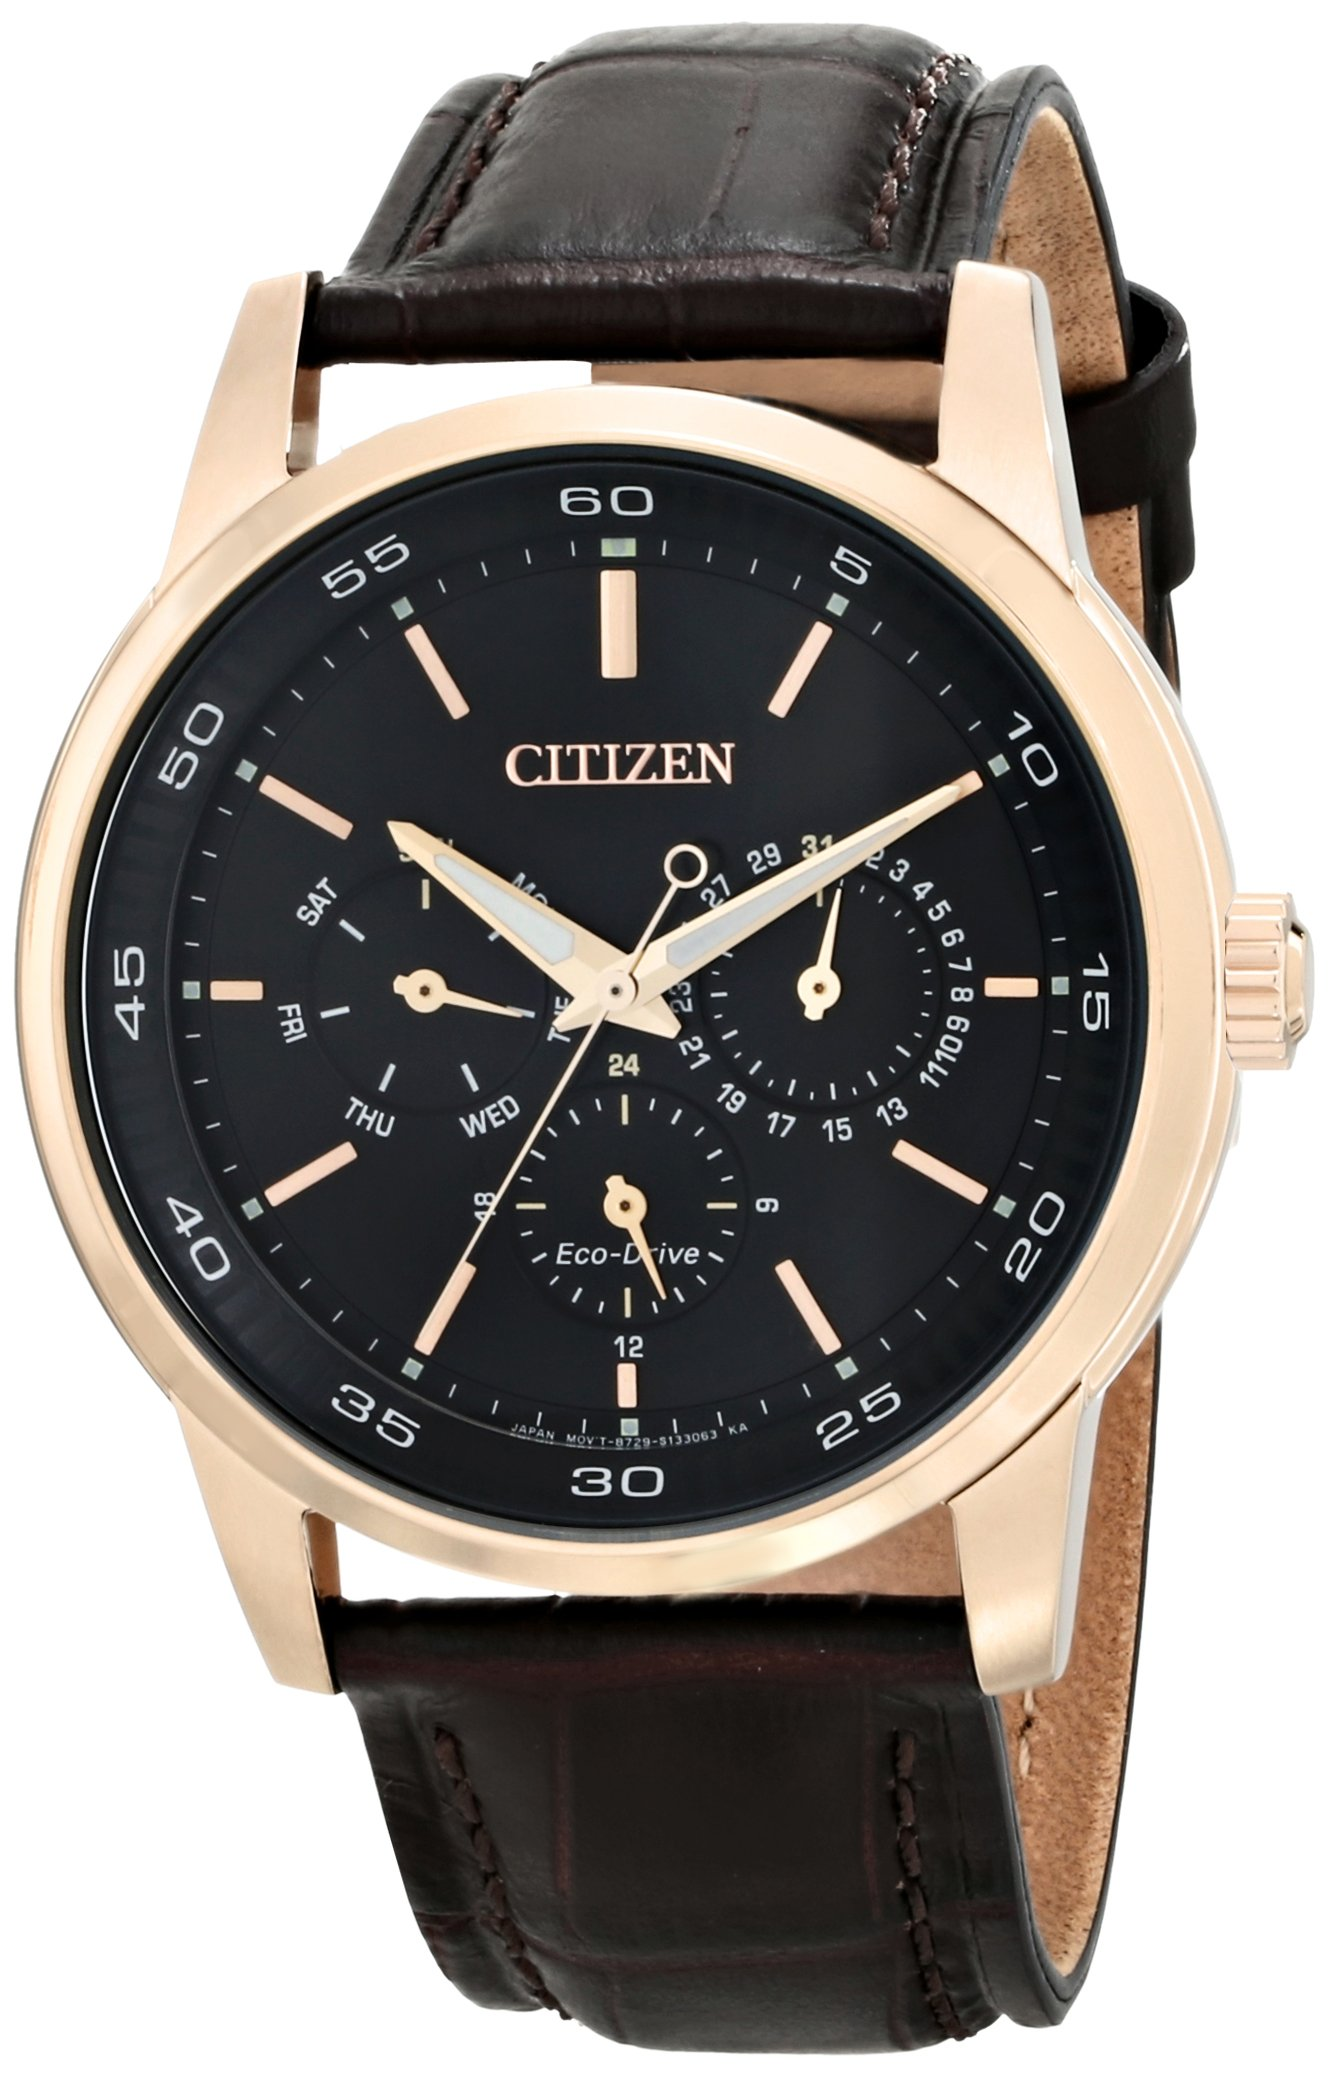 Citizen Men's BU2013-08E Eco-Drive Gold-Tone Watch with Brown Leather Band